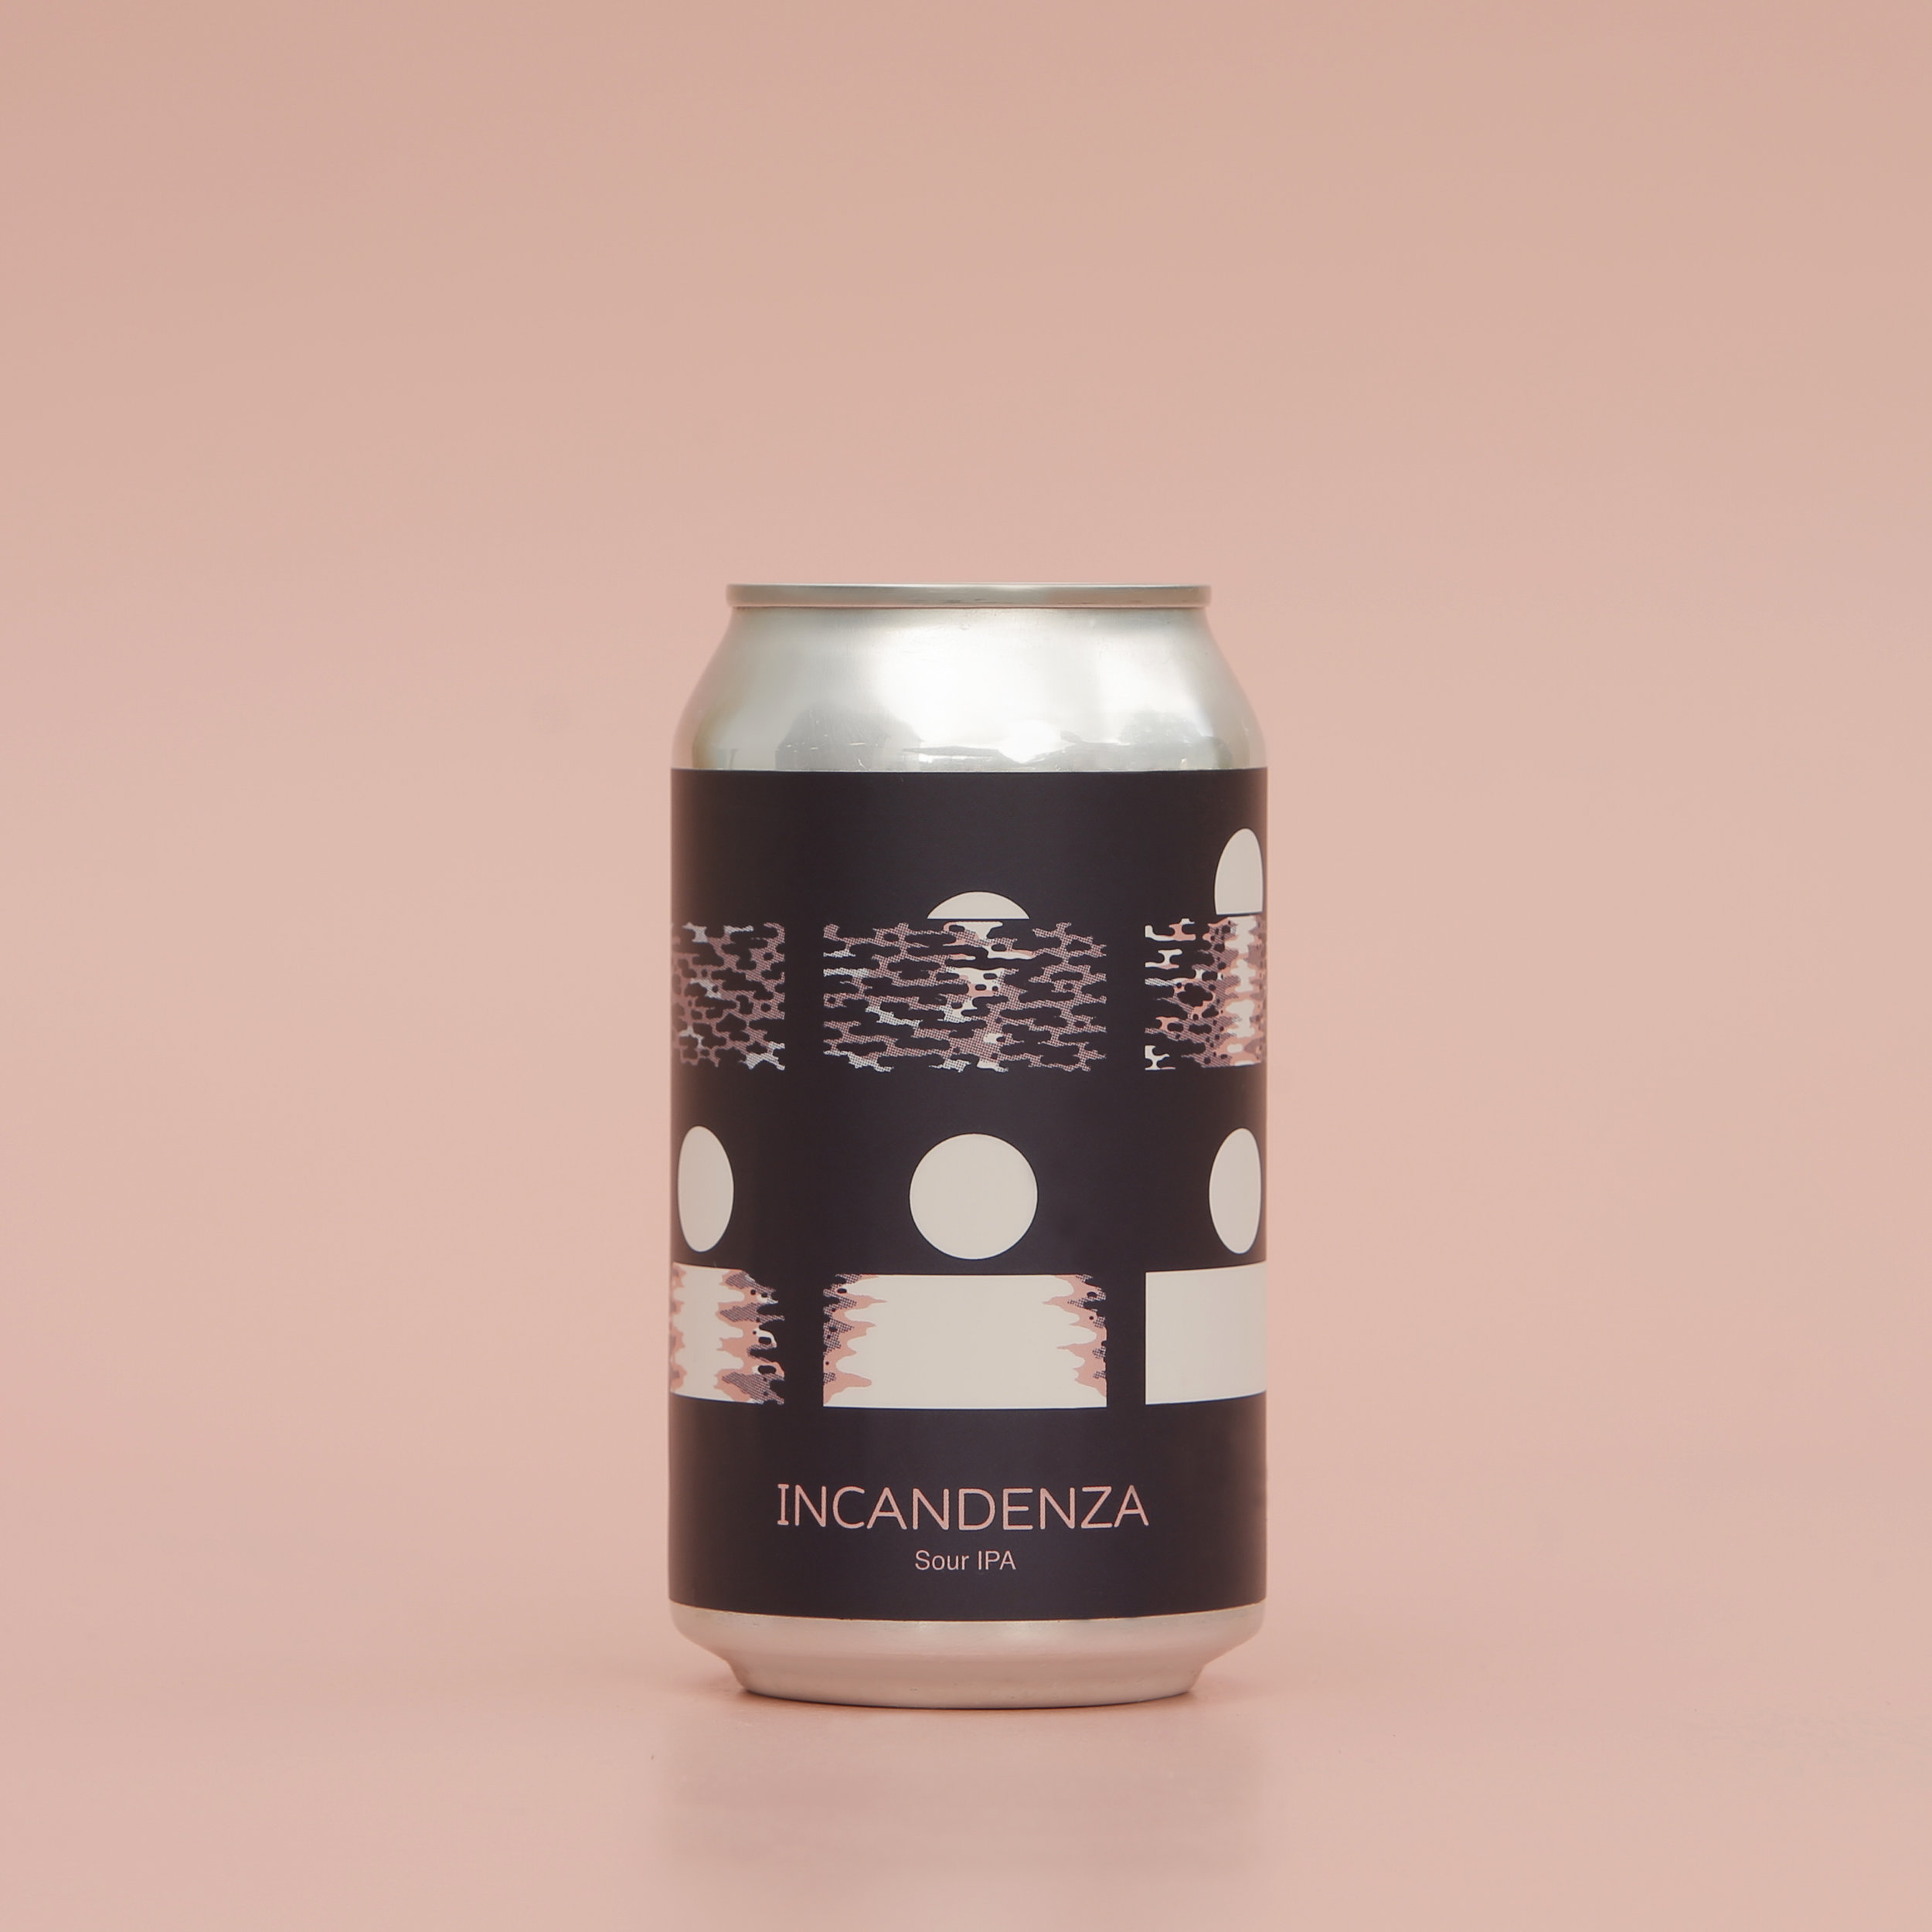 Photo of a can of Incandenza